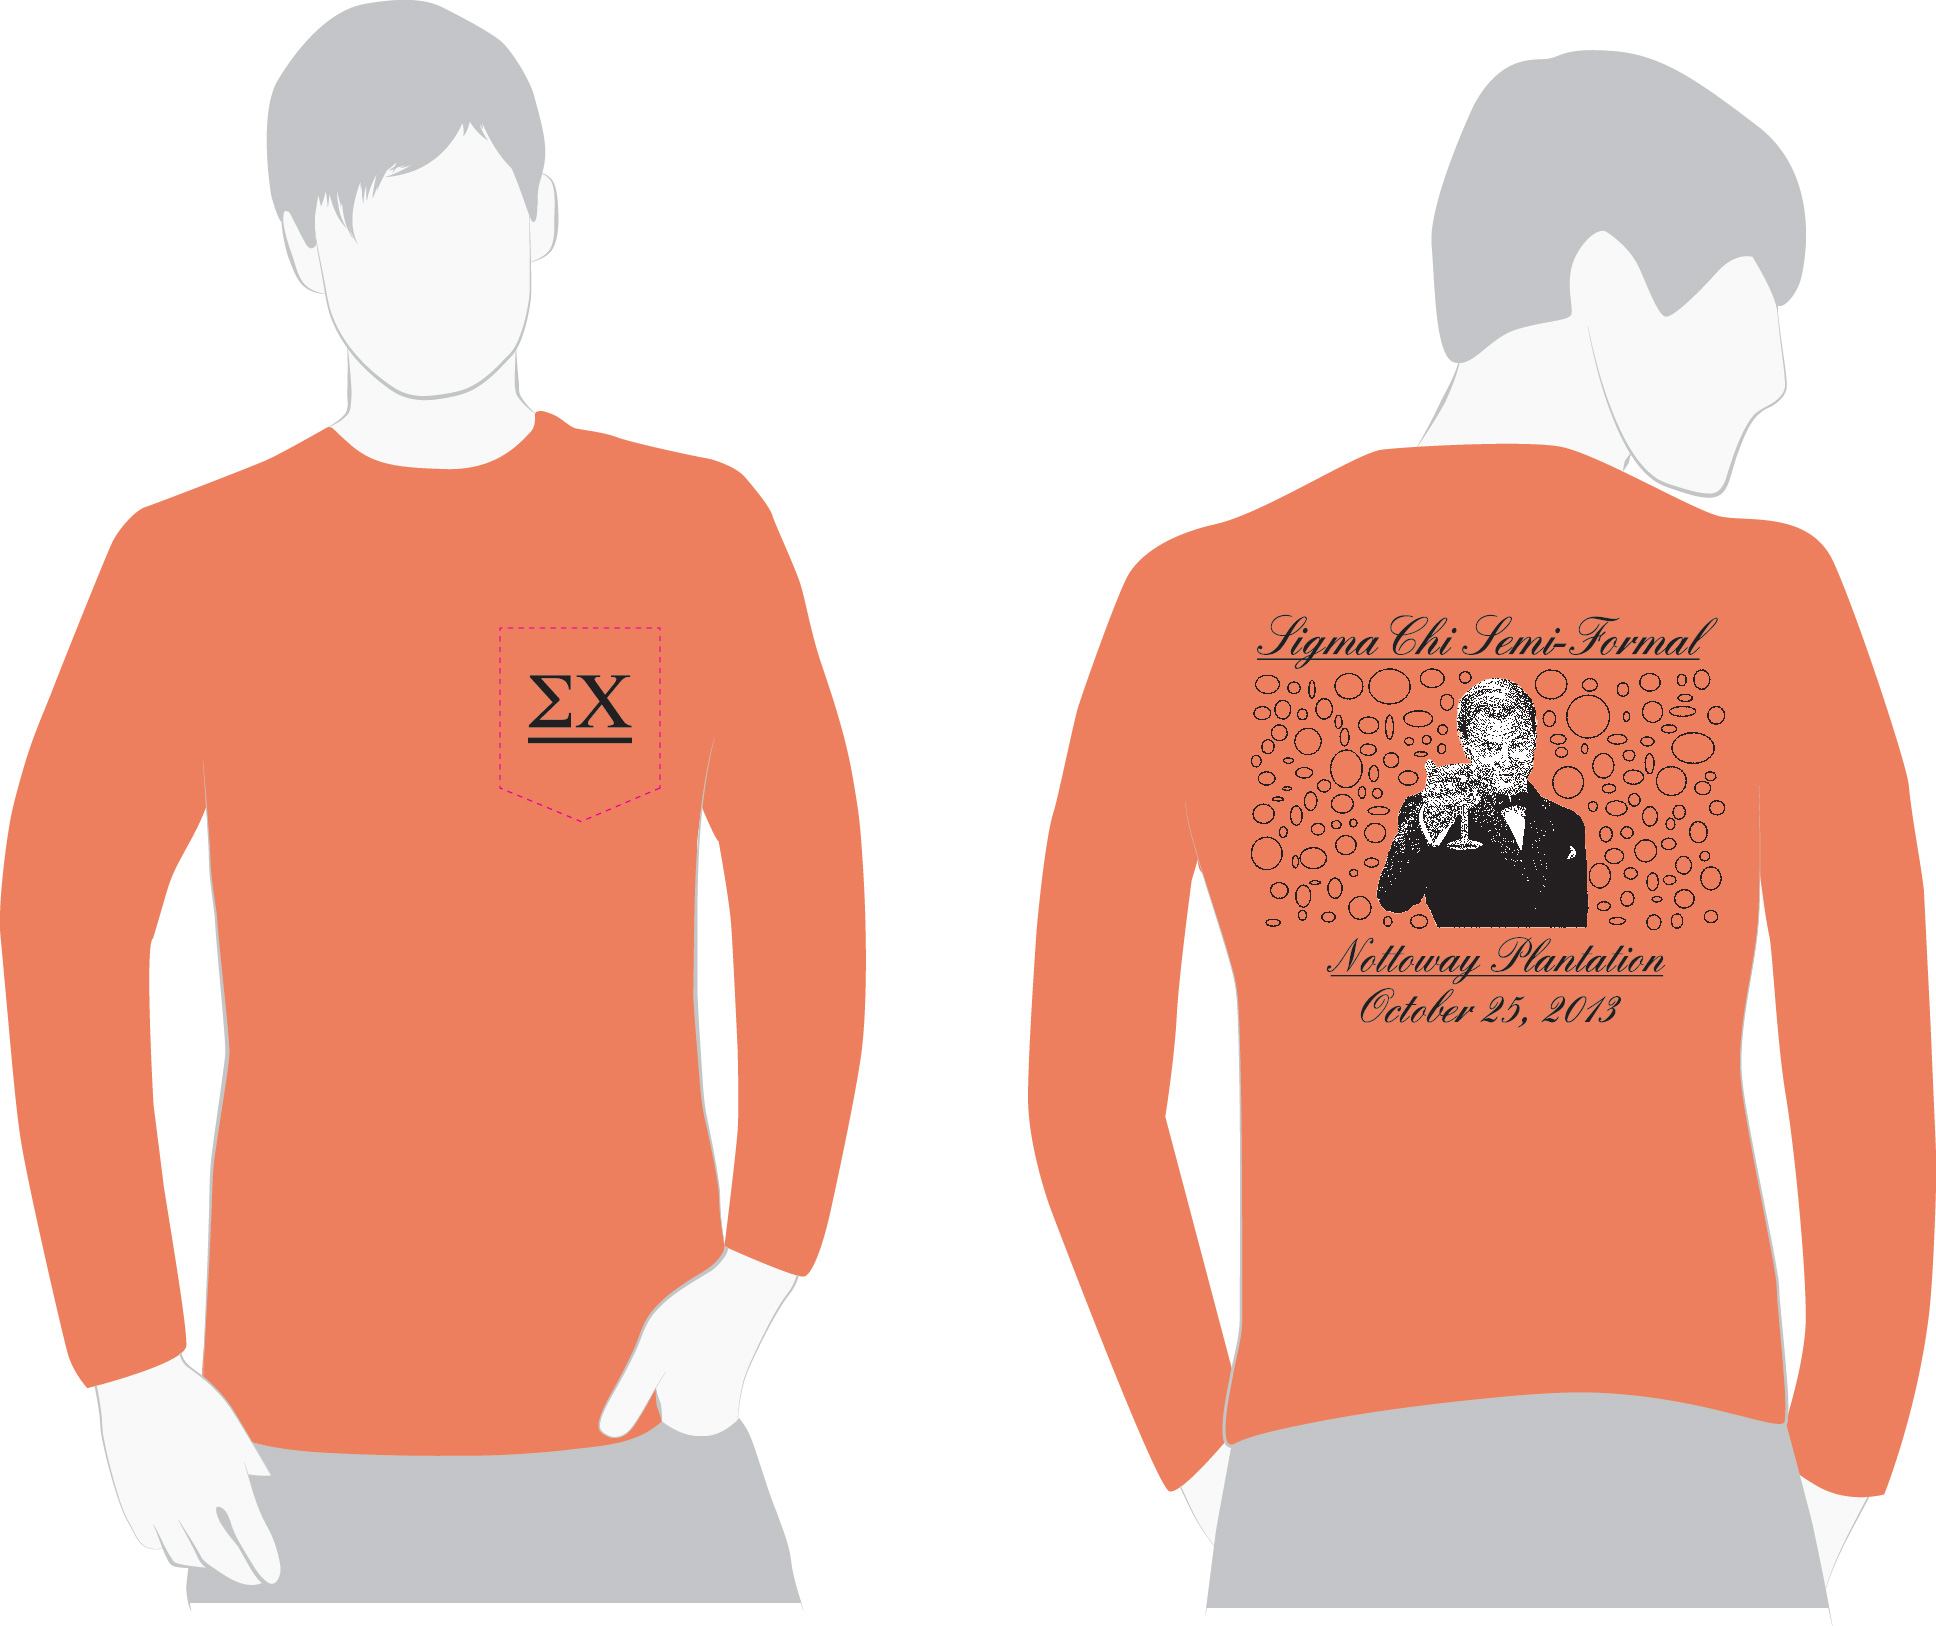 chair positions in a fraternity ekornes chairs for sale sigma chi semiformal talk 39n t shirts greek